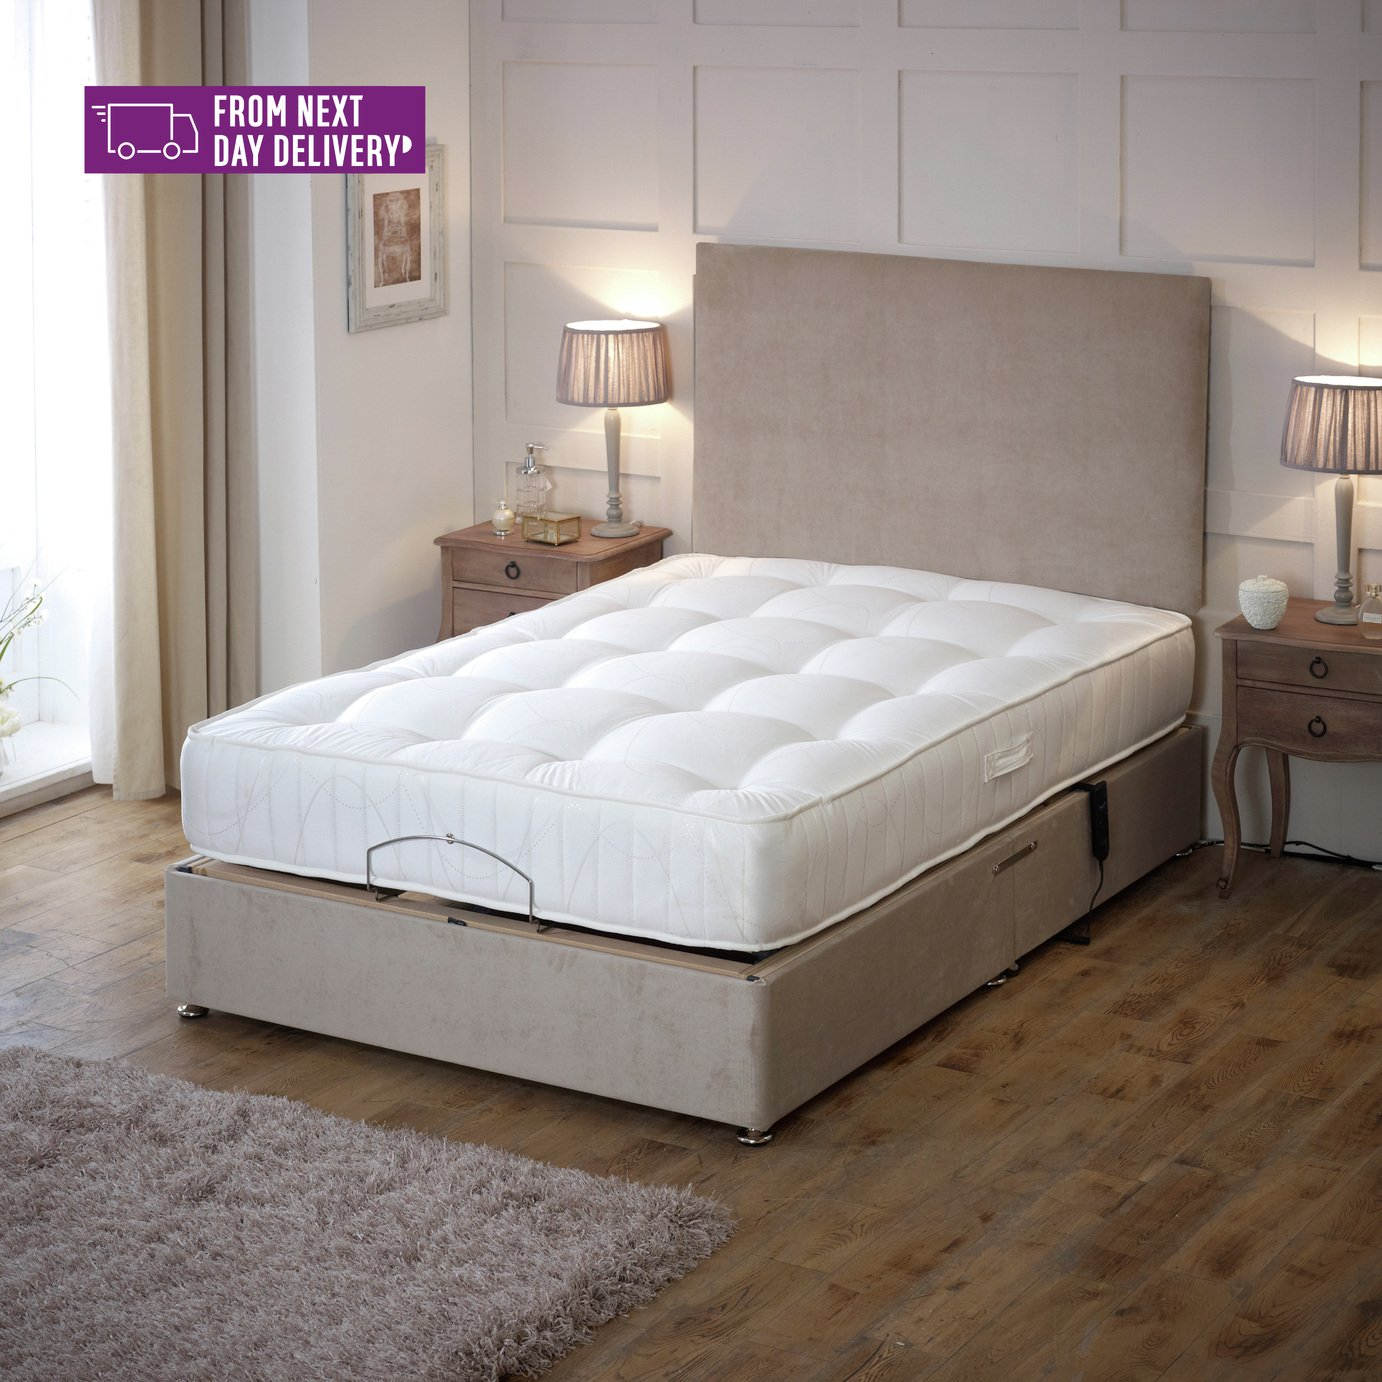 Regal Double Adjustable Bed with Pocket Sprung Mattress